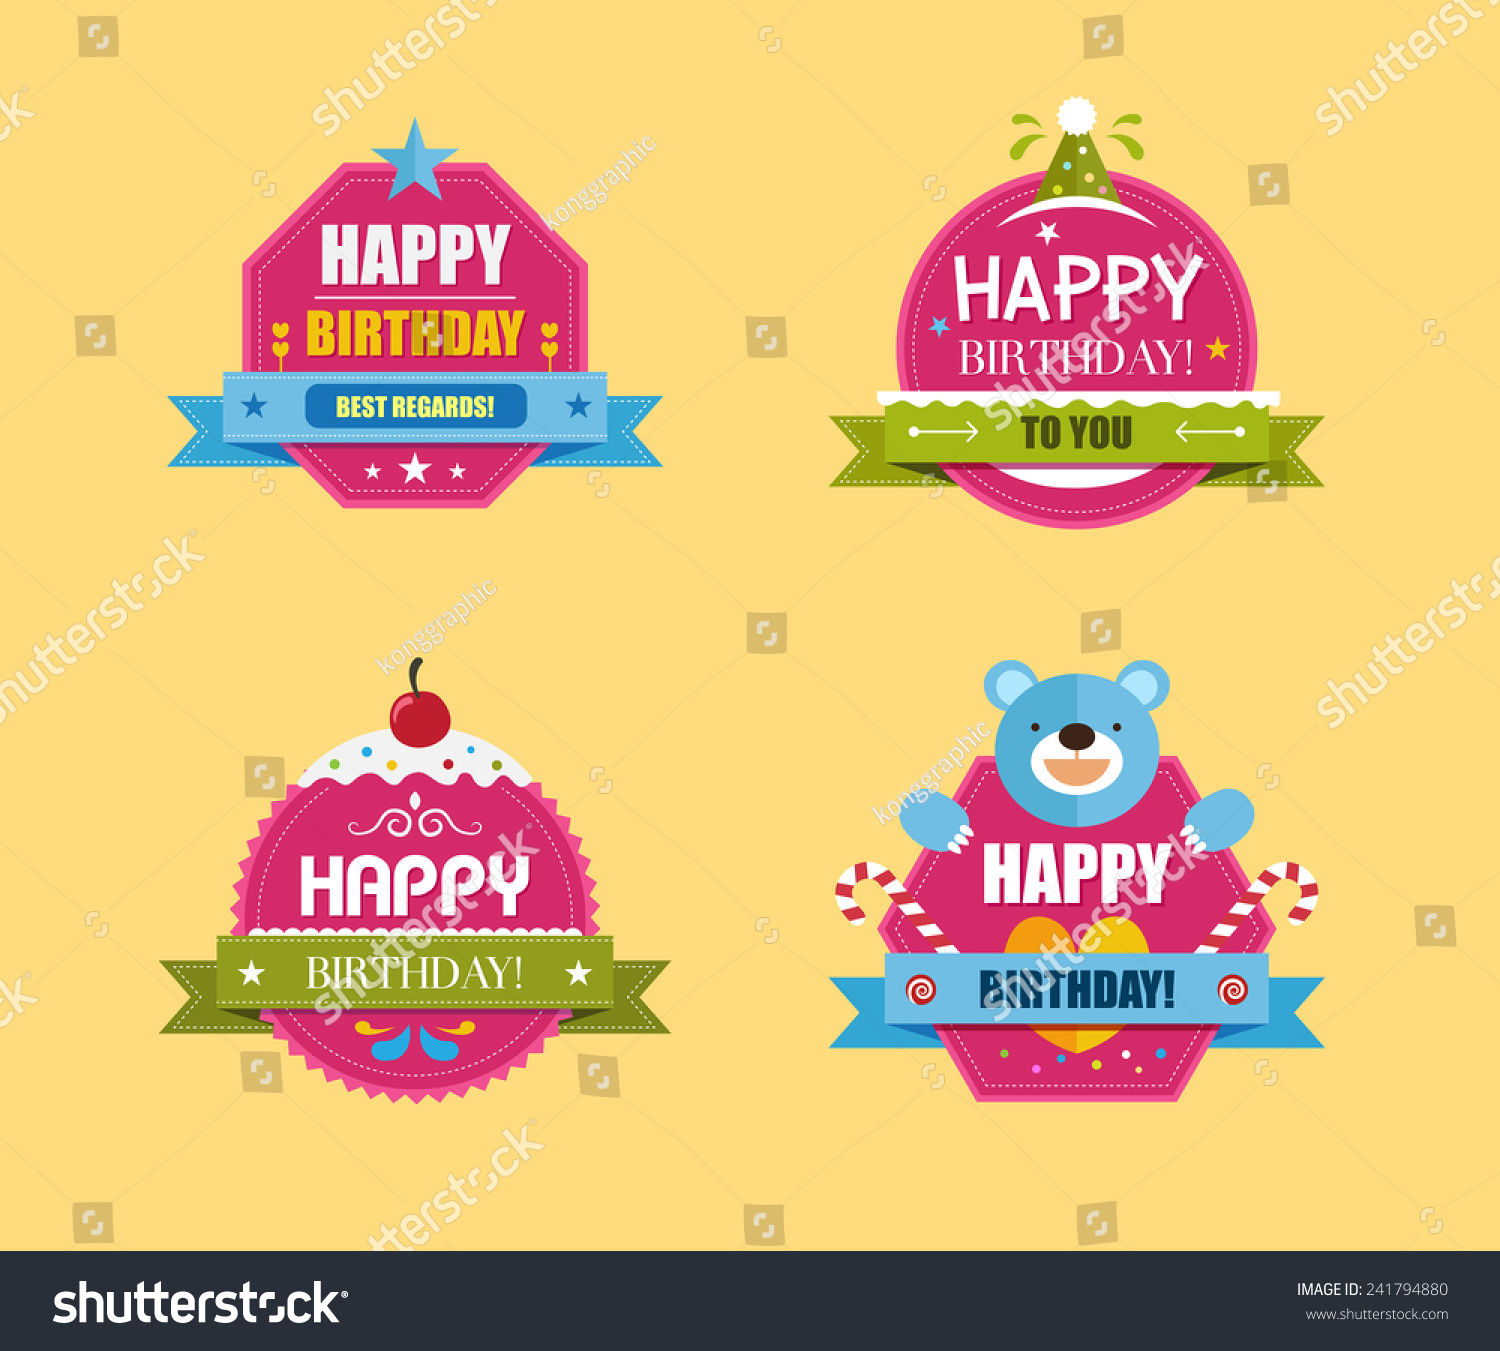 birthday labels ; stock-vector-happy-birthday-labels-collection-vector-illustration-241794880